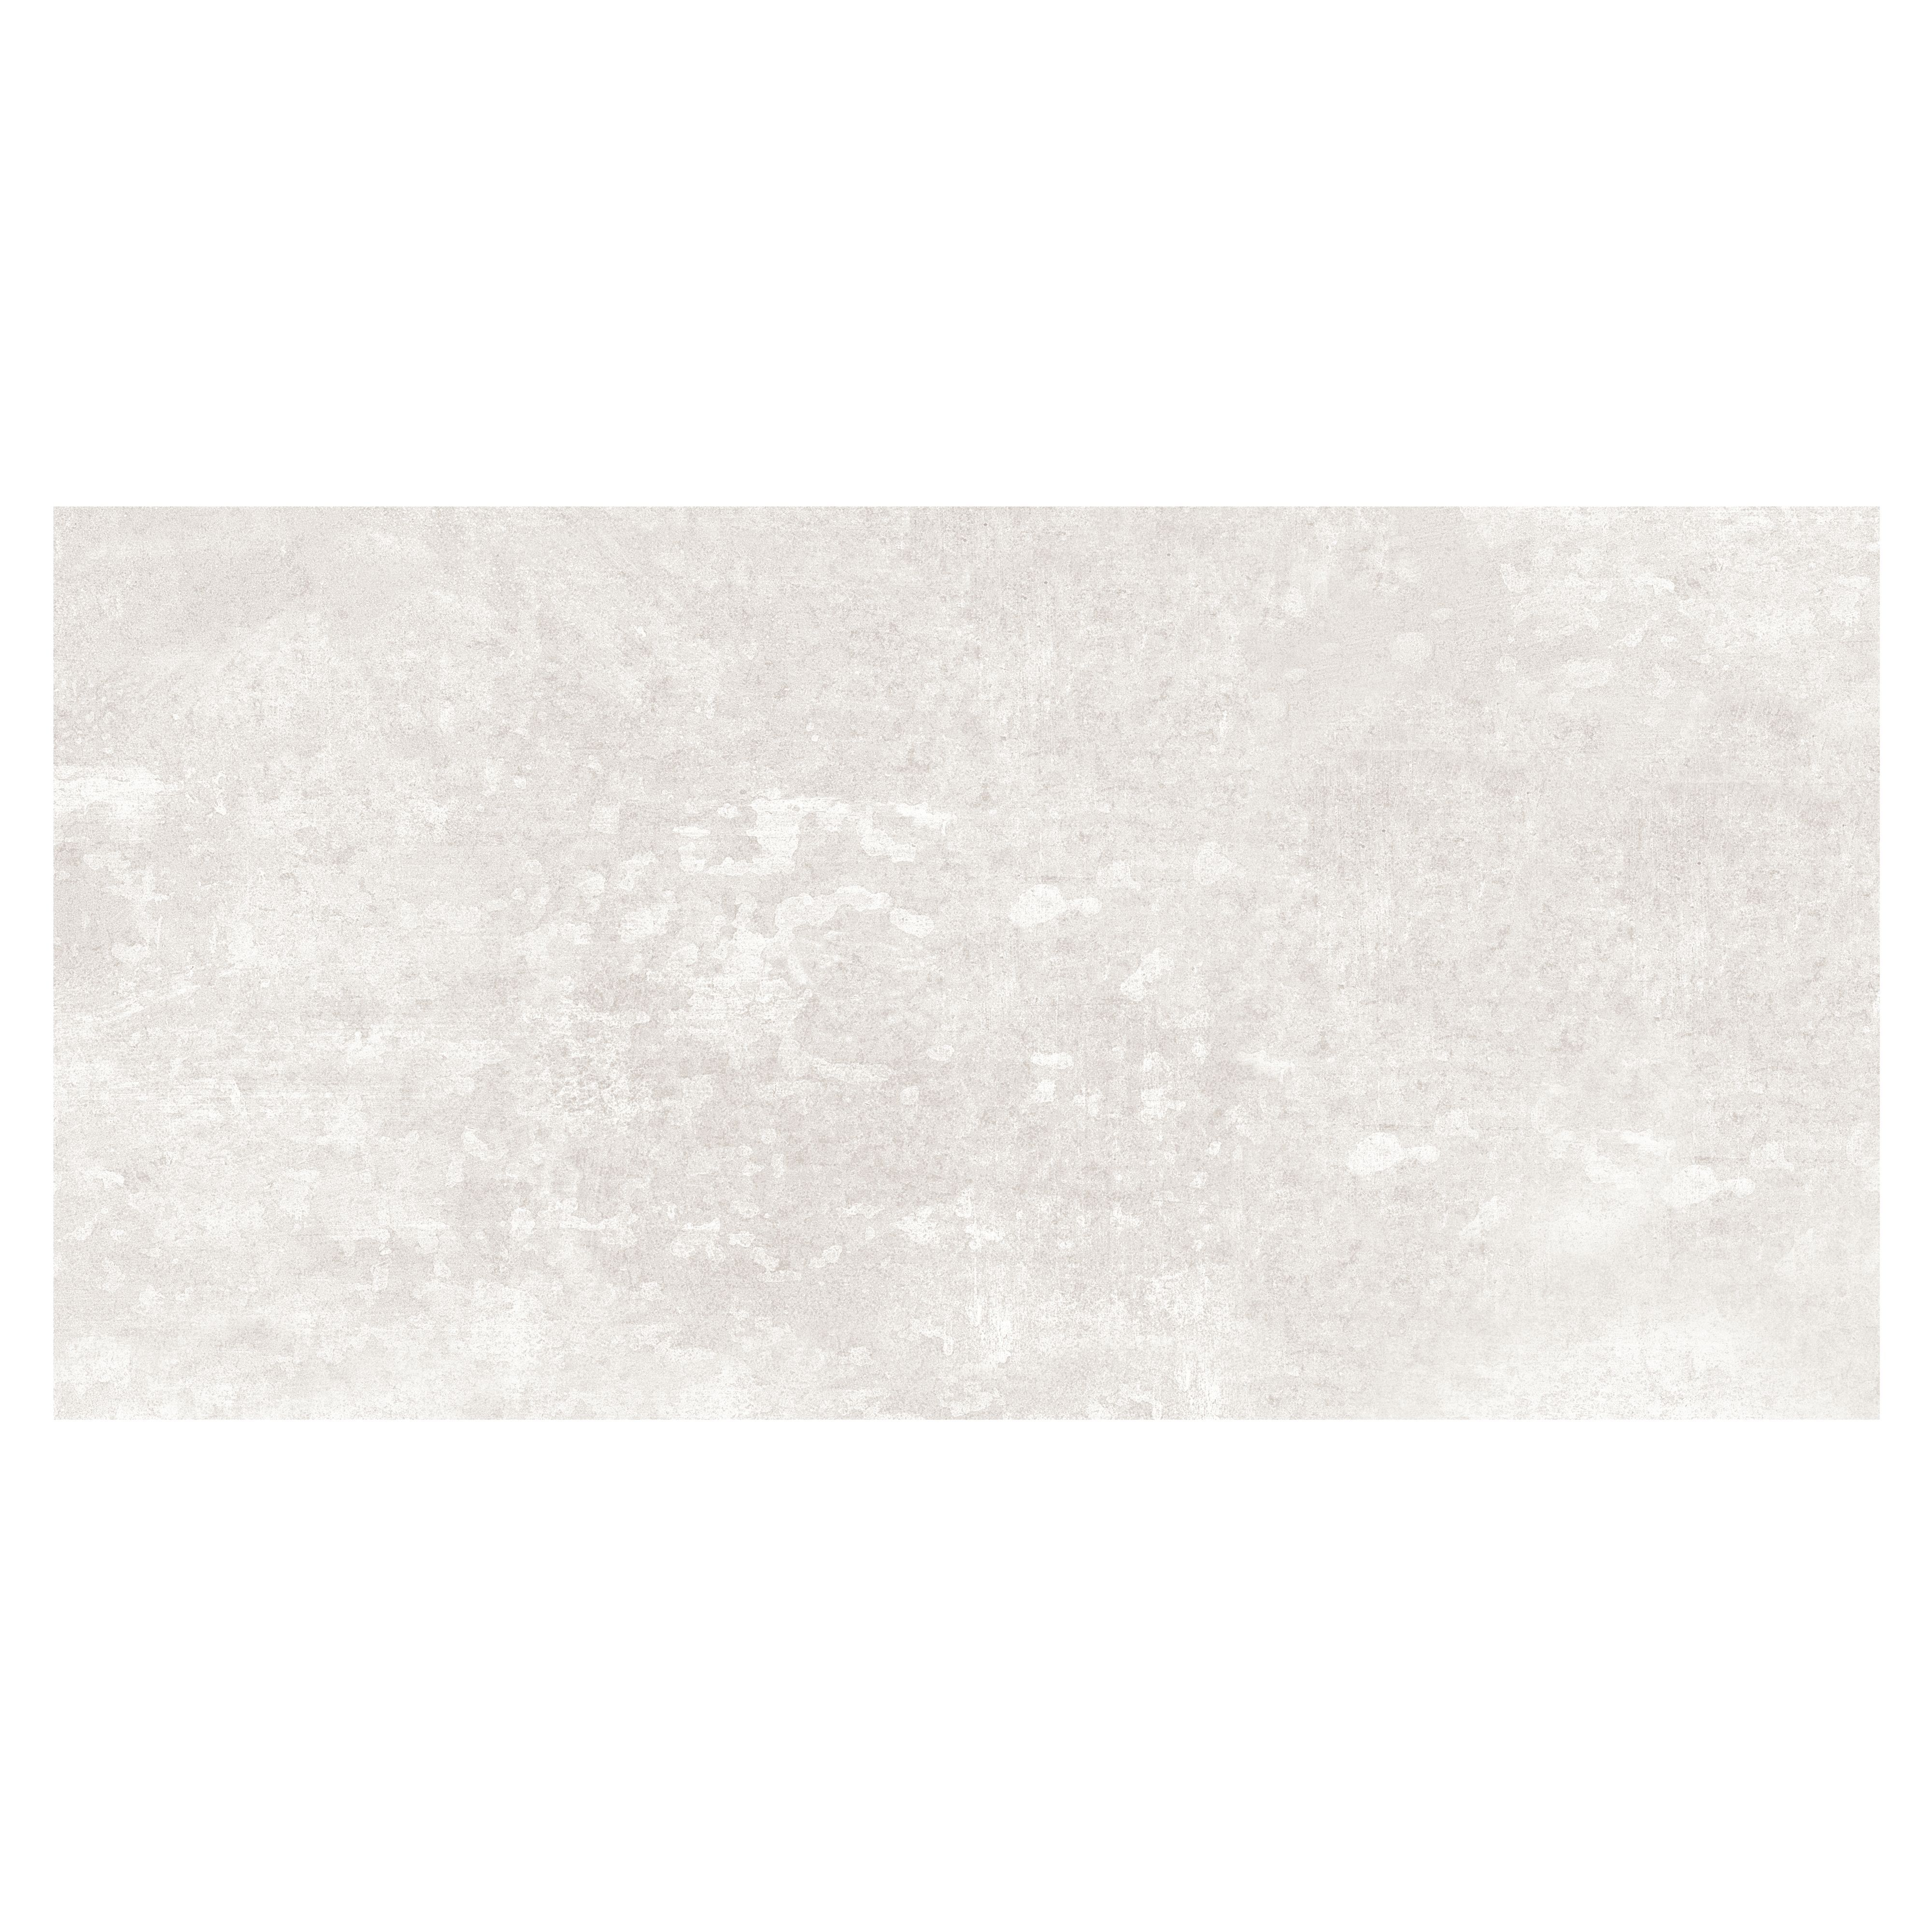 B And Q Kitchen Floor Tiles Illusion White Marble Effect Ceramic Wall Floor Tile Pack Of 10